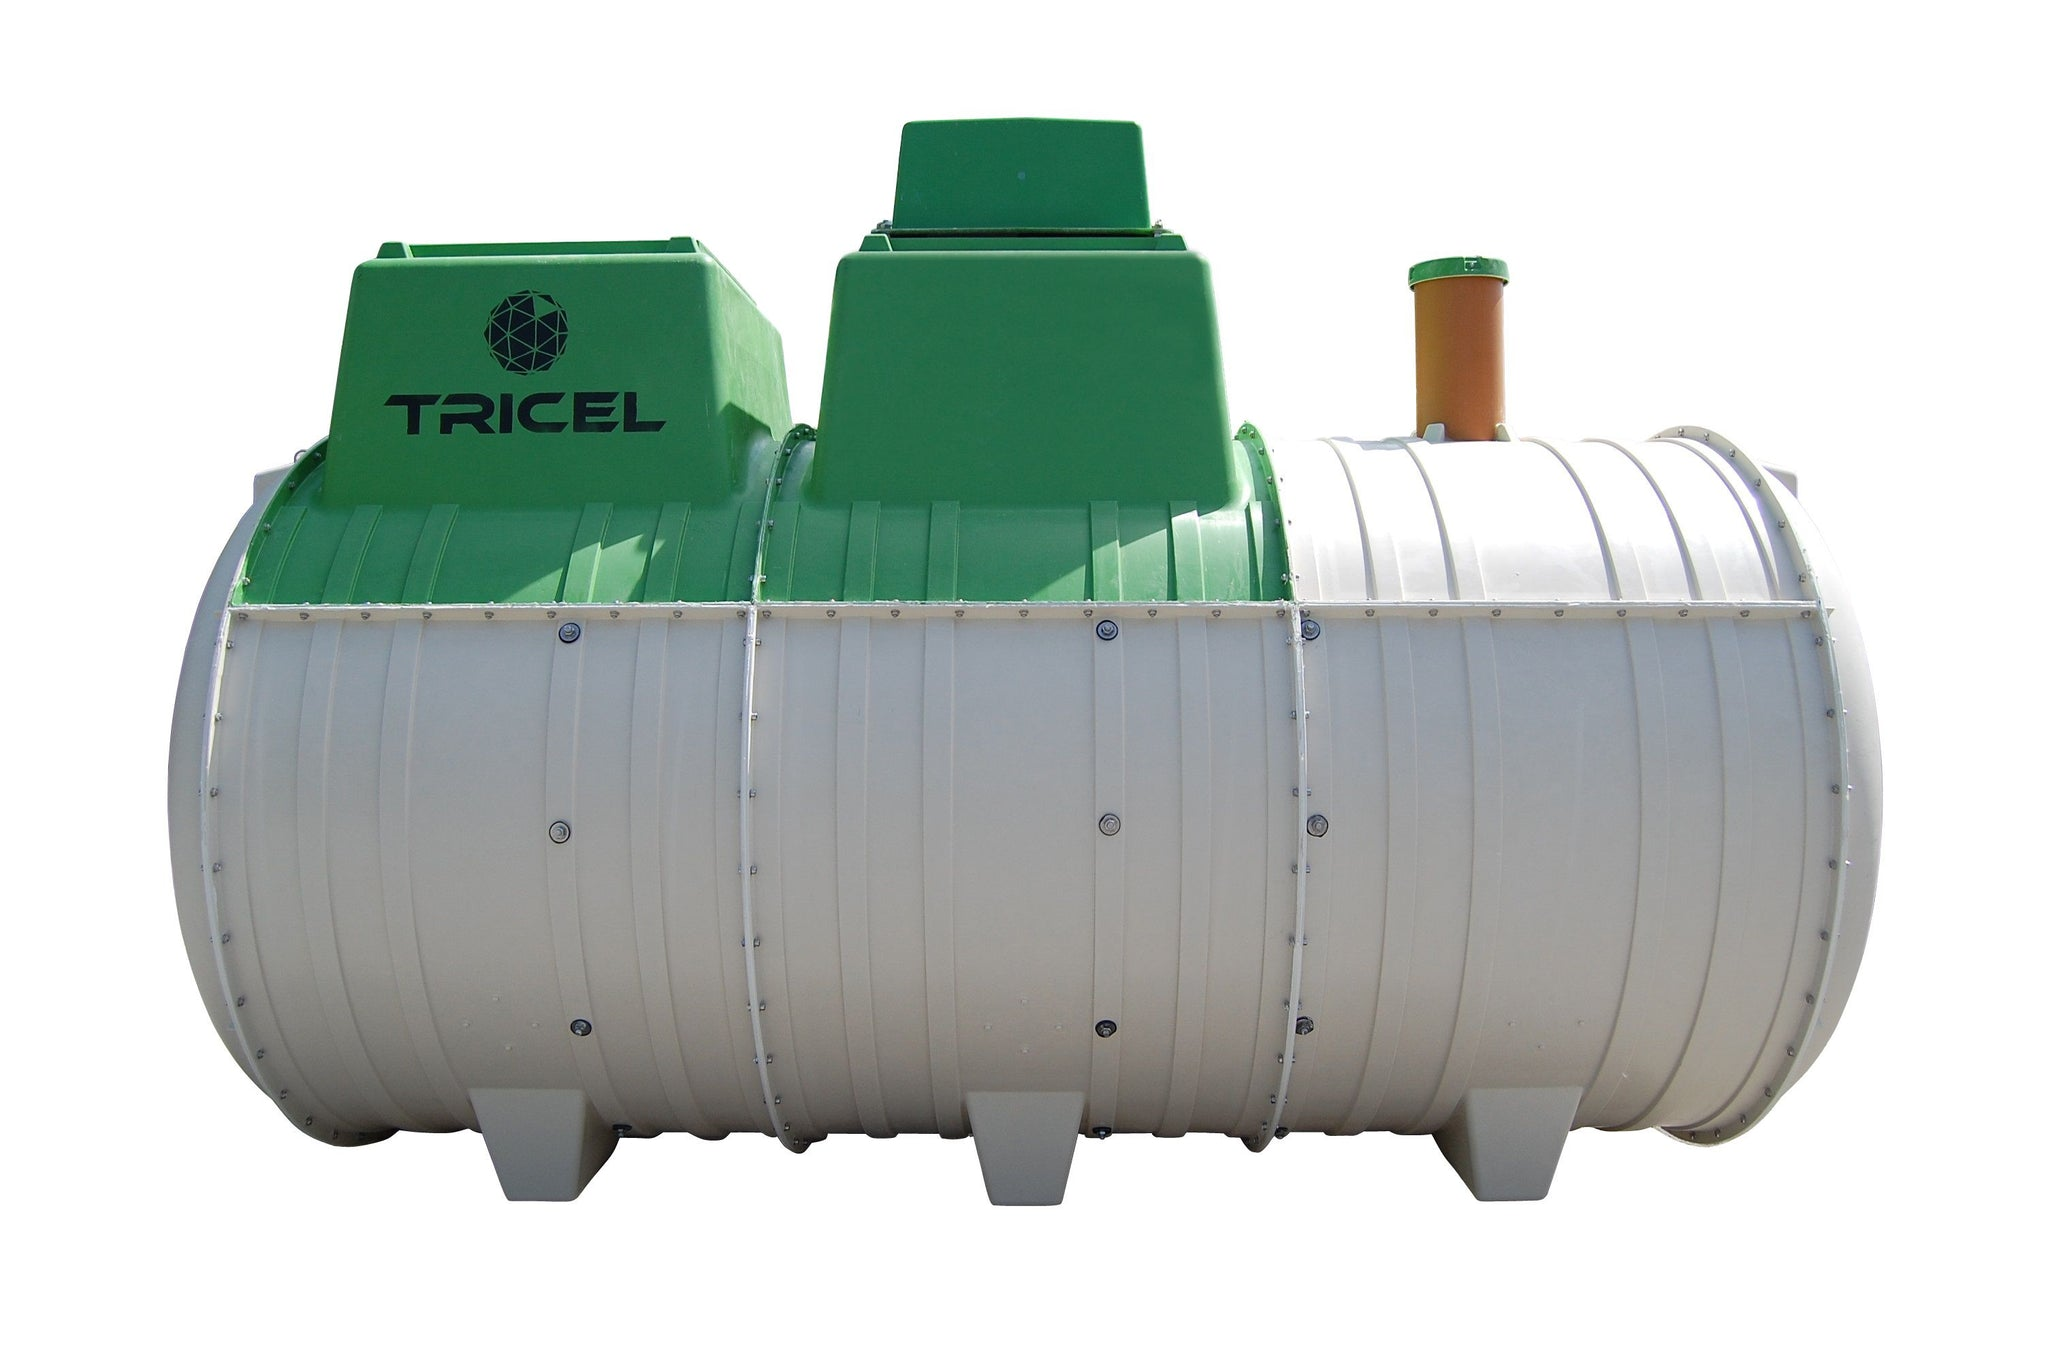 Tricel Novo UK12 Sewage Treatment System (up to 12 population)